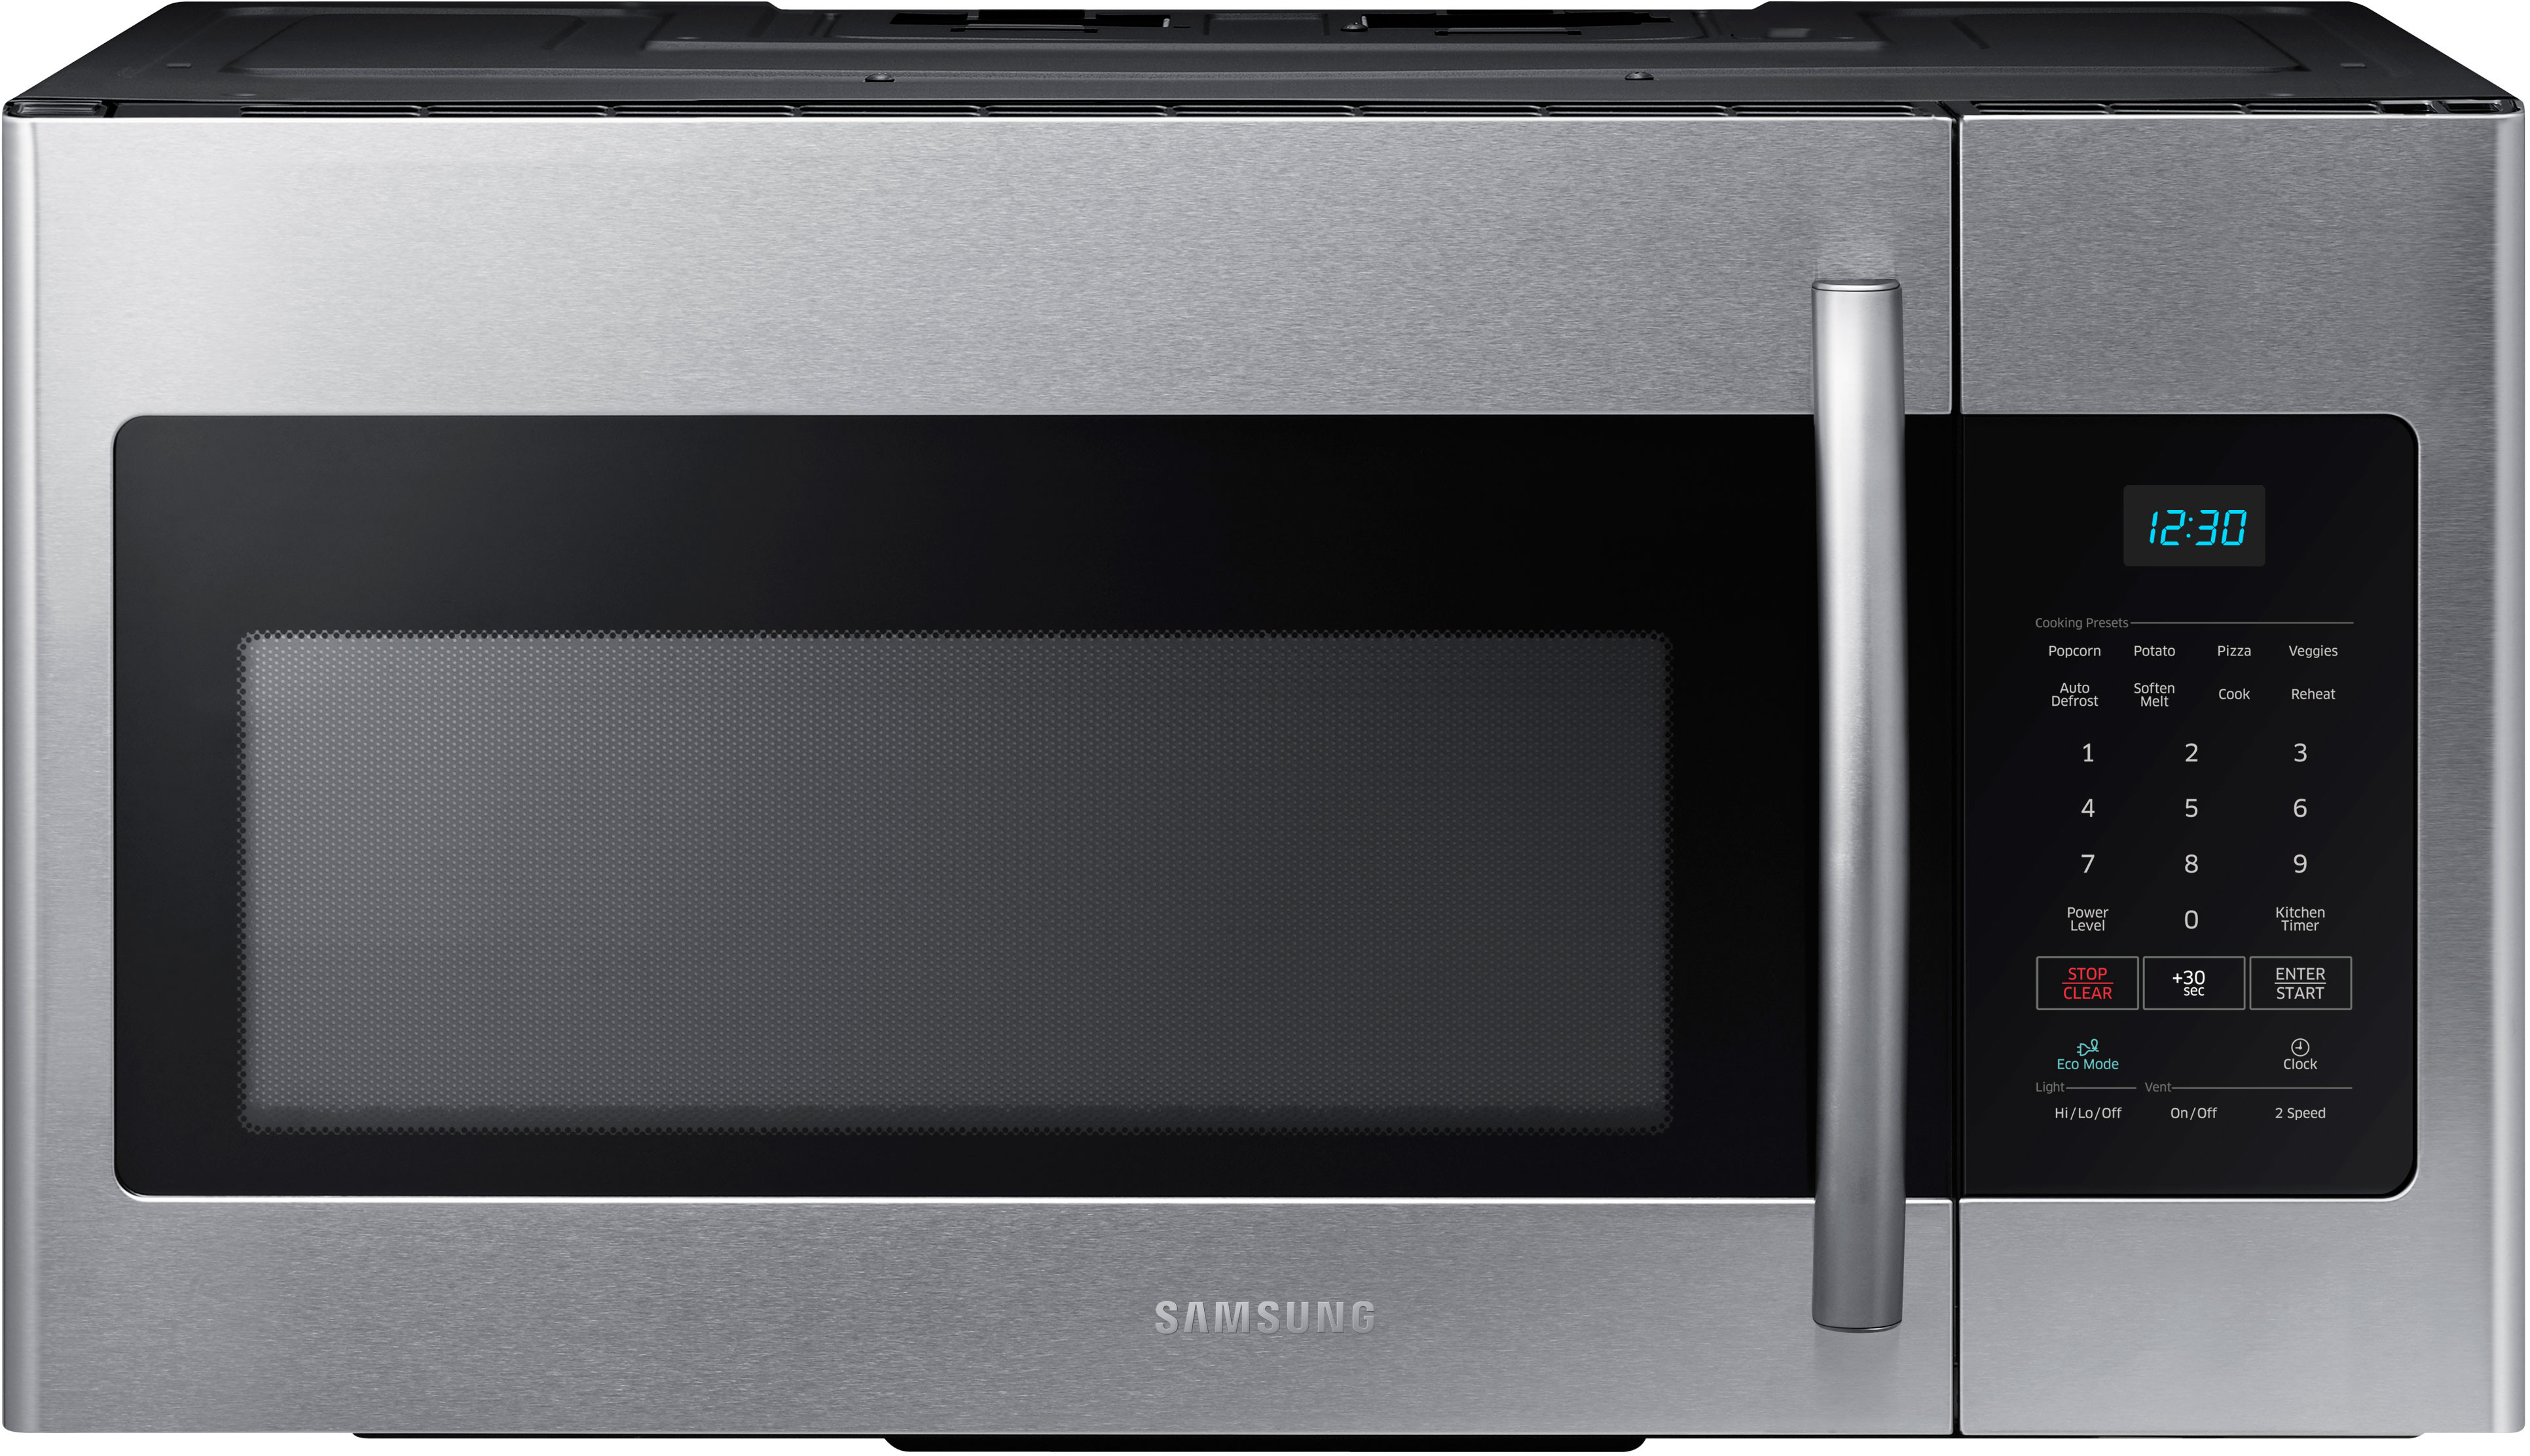 Over The Range Microwave Oven With Eco Mode Auto Defrost 2 Stage Cooking 1 000 Watts 10 Levels And 300 Cfm Venting System Stainless Steel